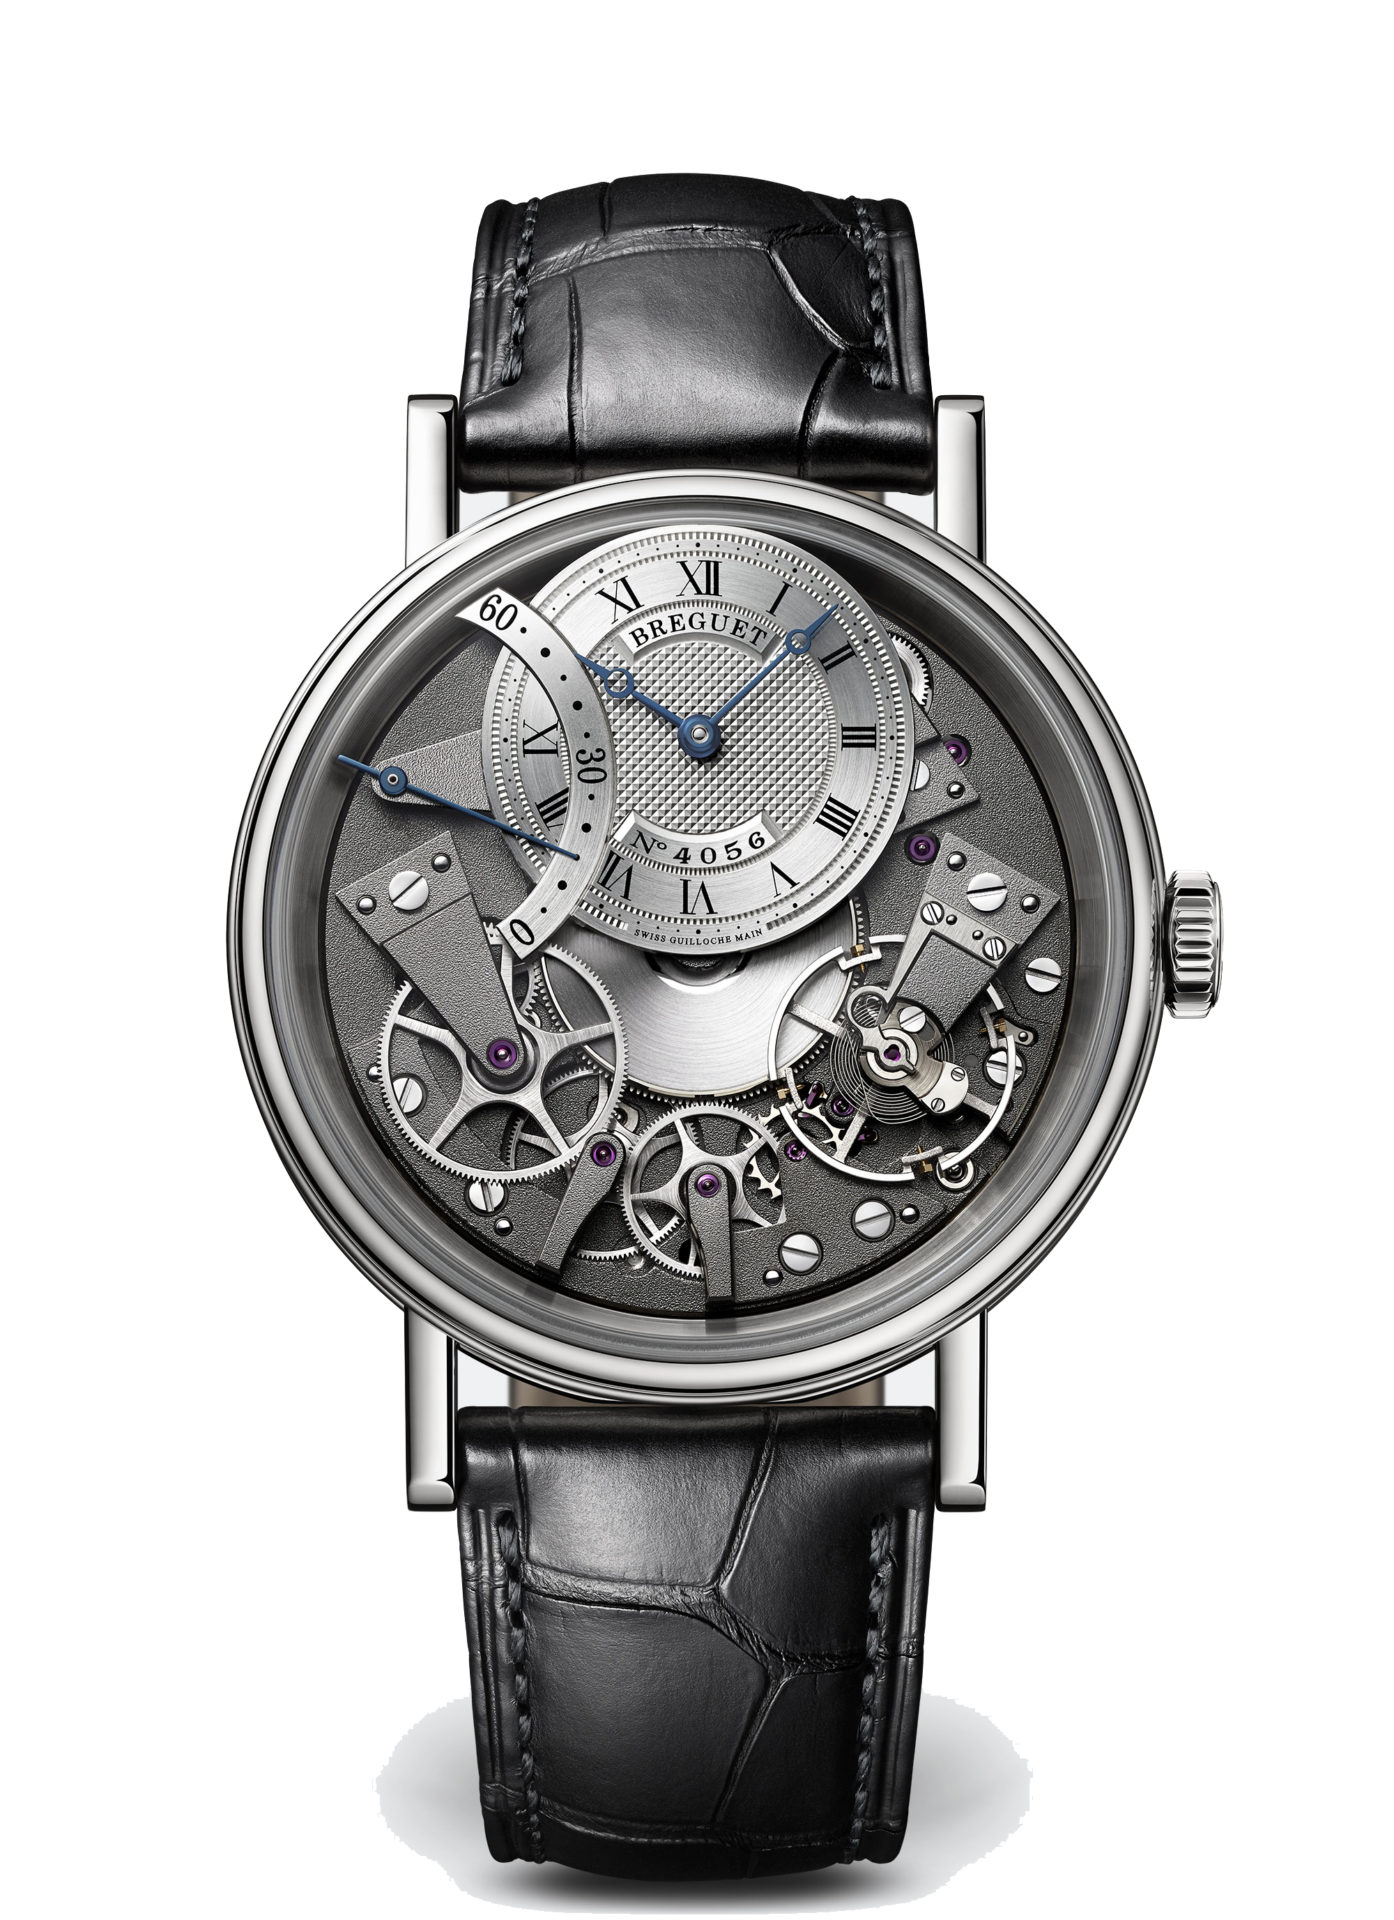 Breguet-Tradition-Hall-of-Time-7097bb-g1-9wu